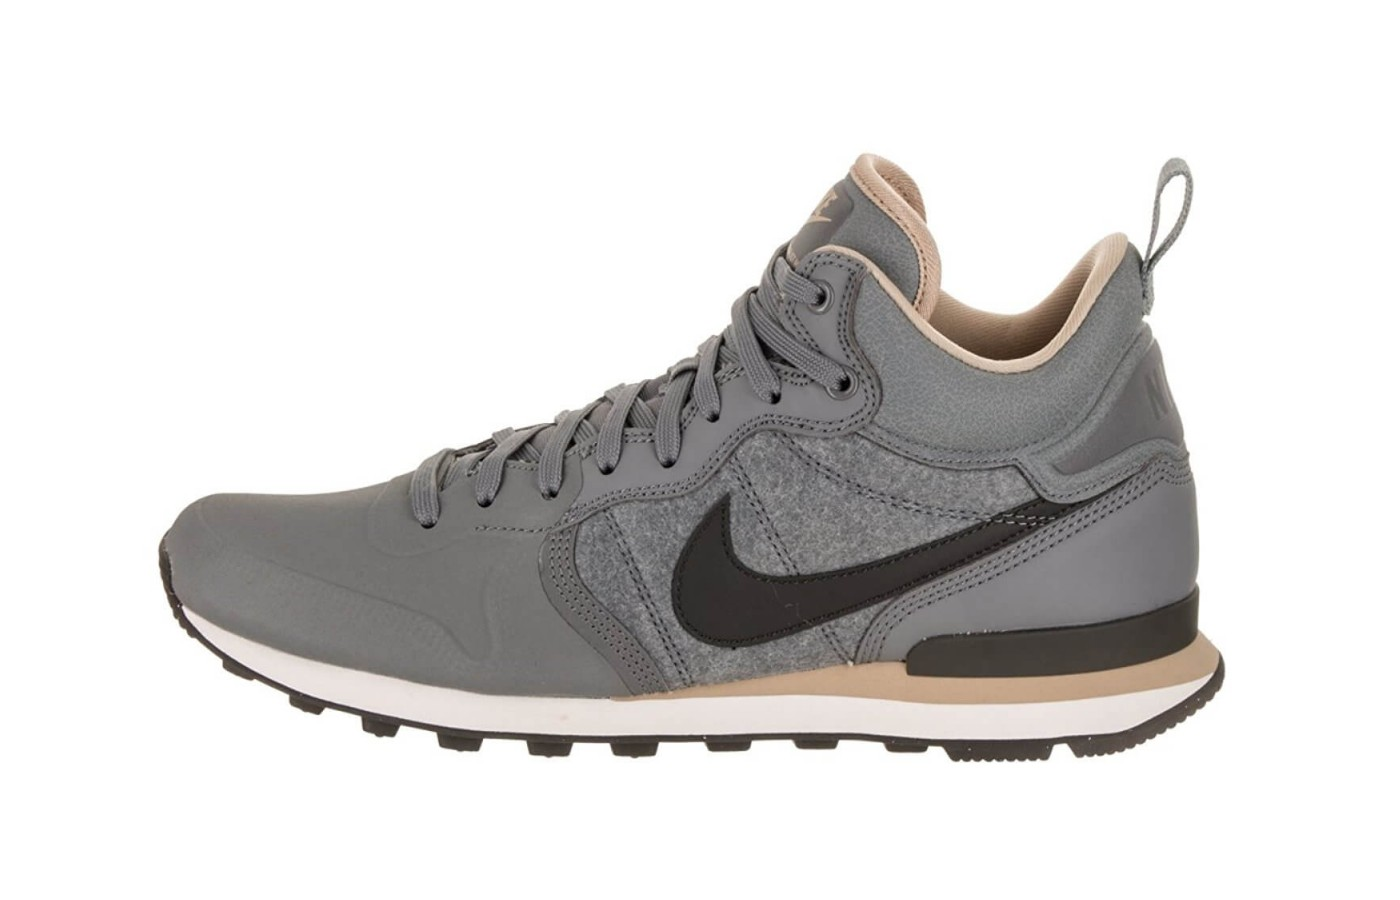 The Nike Internationalist Utility has a Phylon midsole